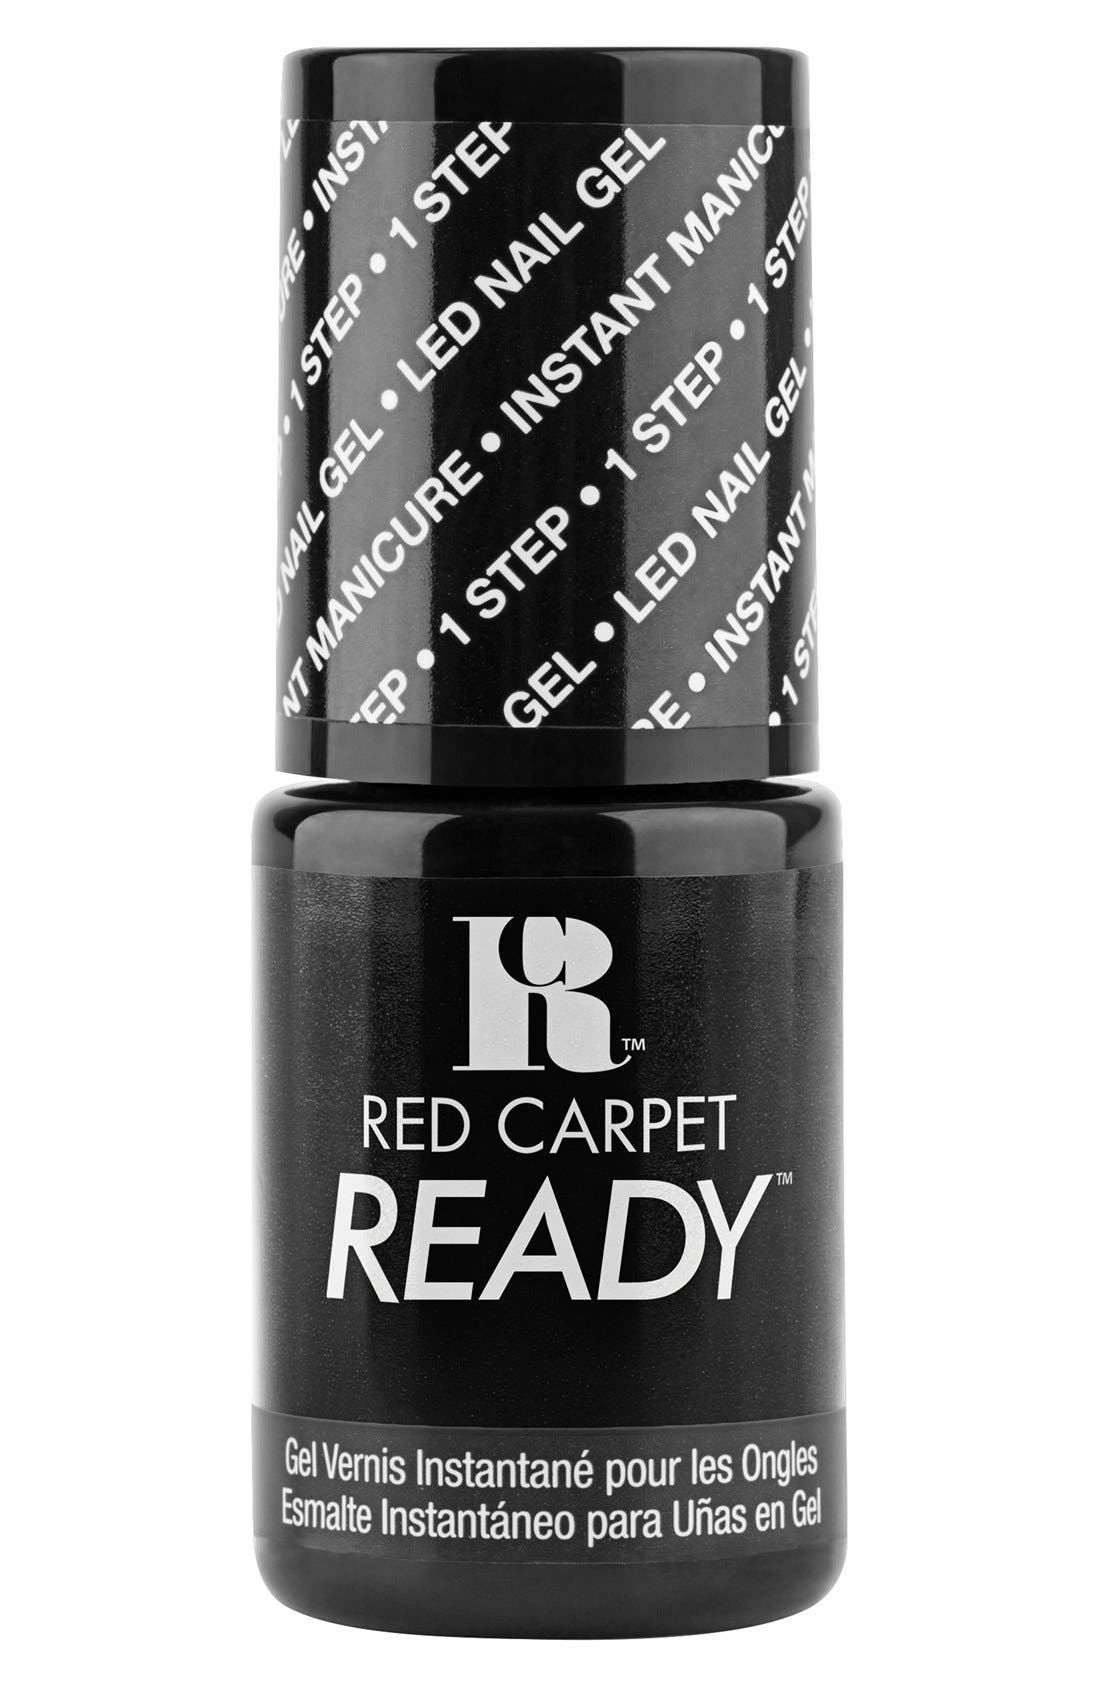 Red Carpet Manicure 'Red Carpet Ready' LED Nail Gel Polish